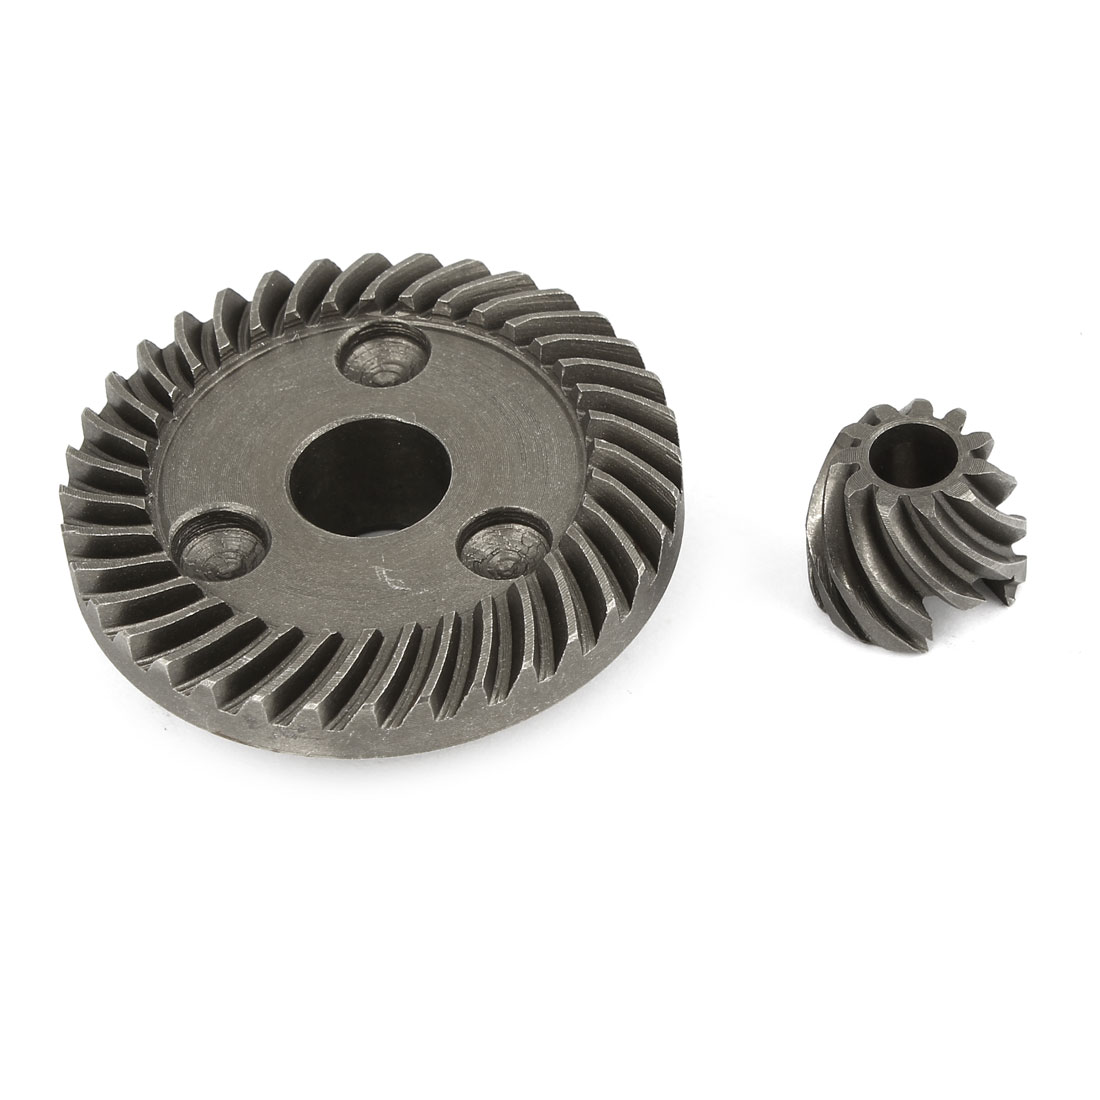 Power Tool Repairing Spiral Bevel Gear Kit for Makita 9523 Angle Grinder